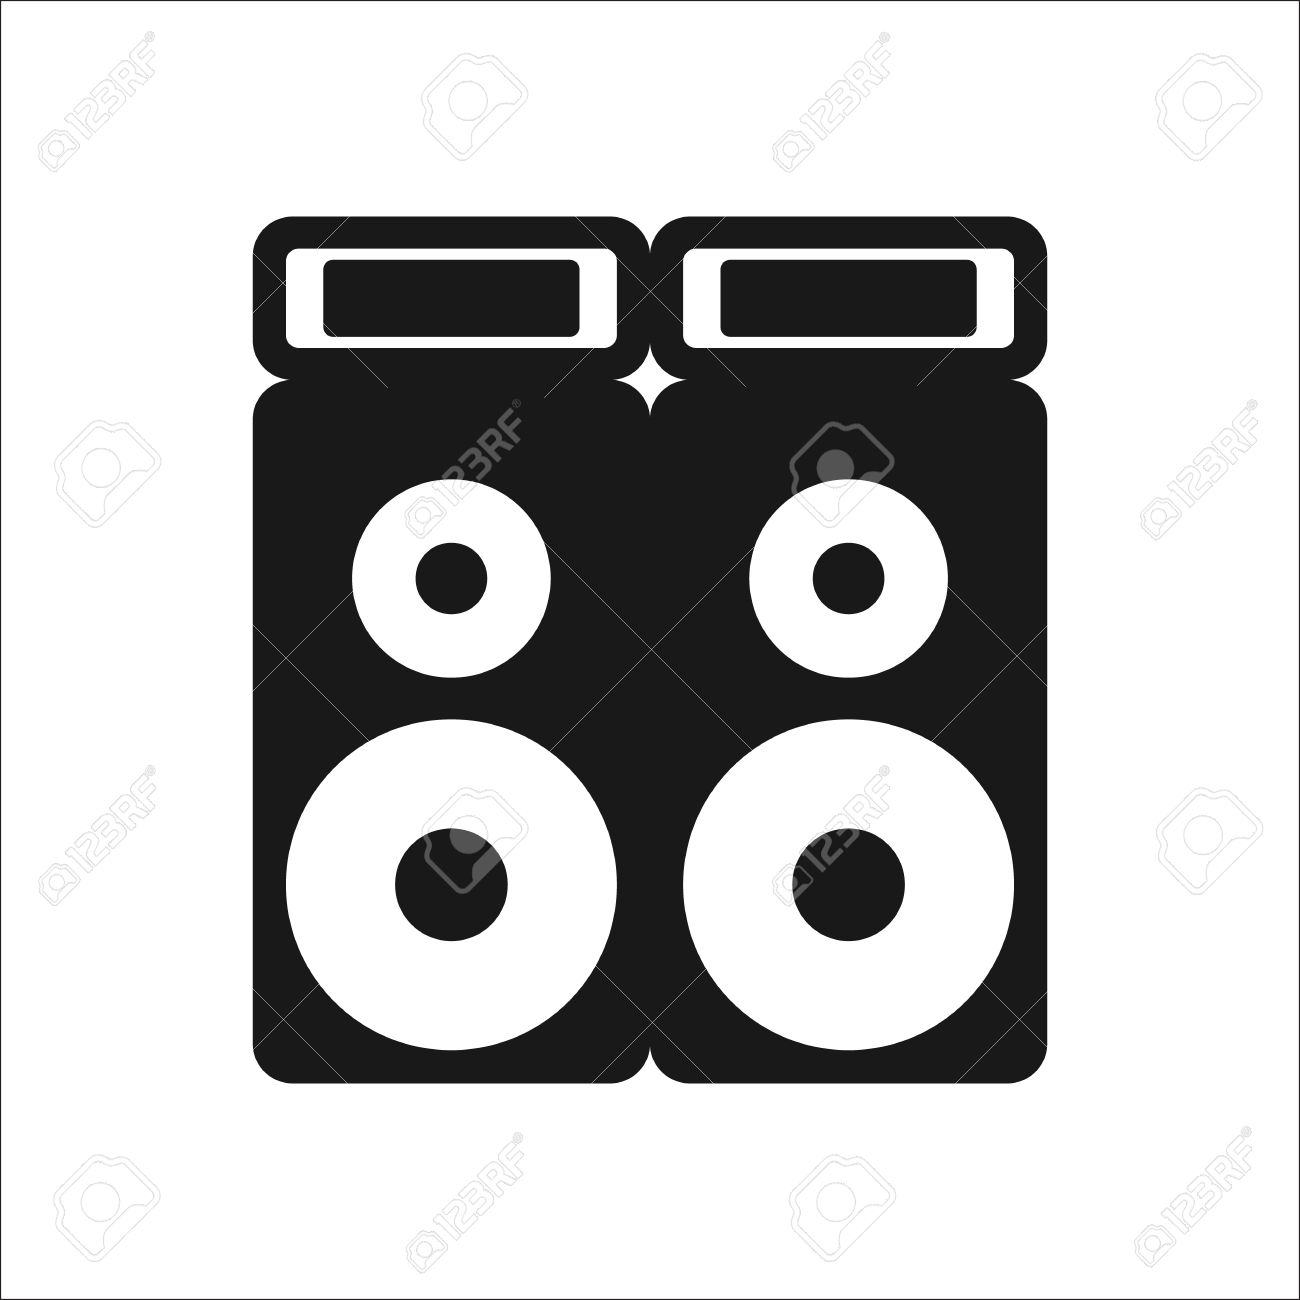 sound system clipart. festival sound system speaker sign simple icon on background stock vector - 59840287 clipart